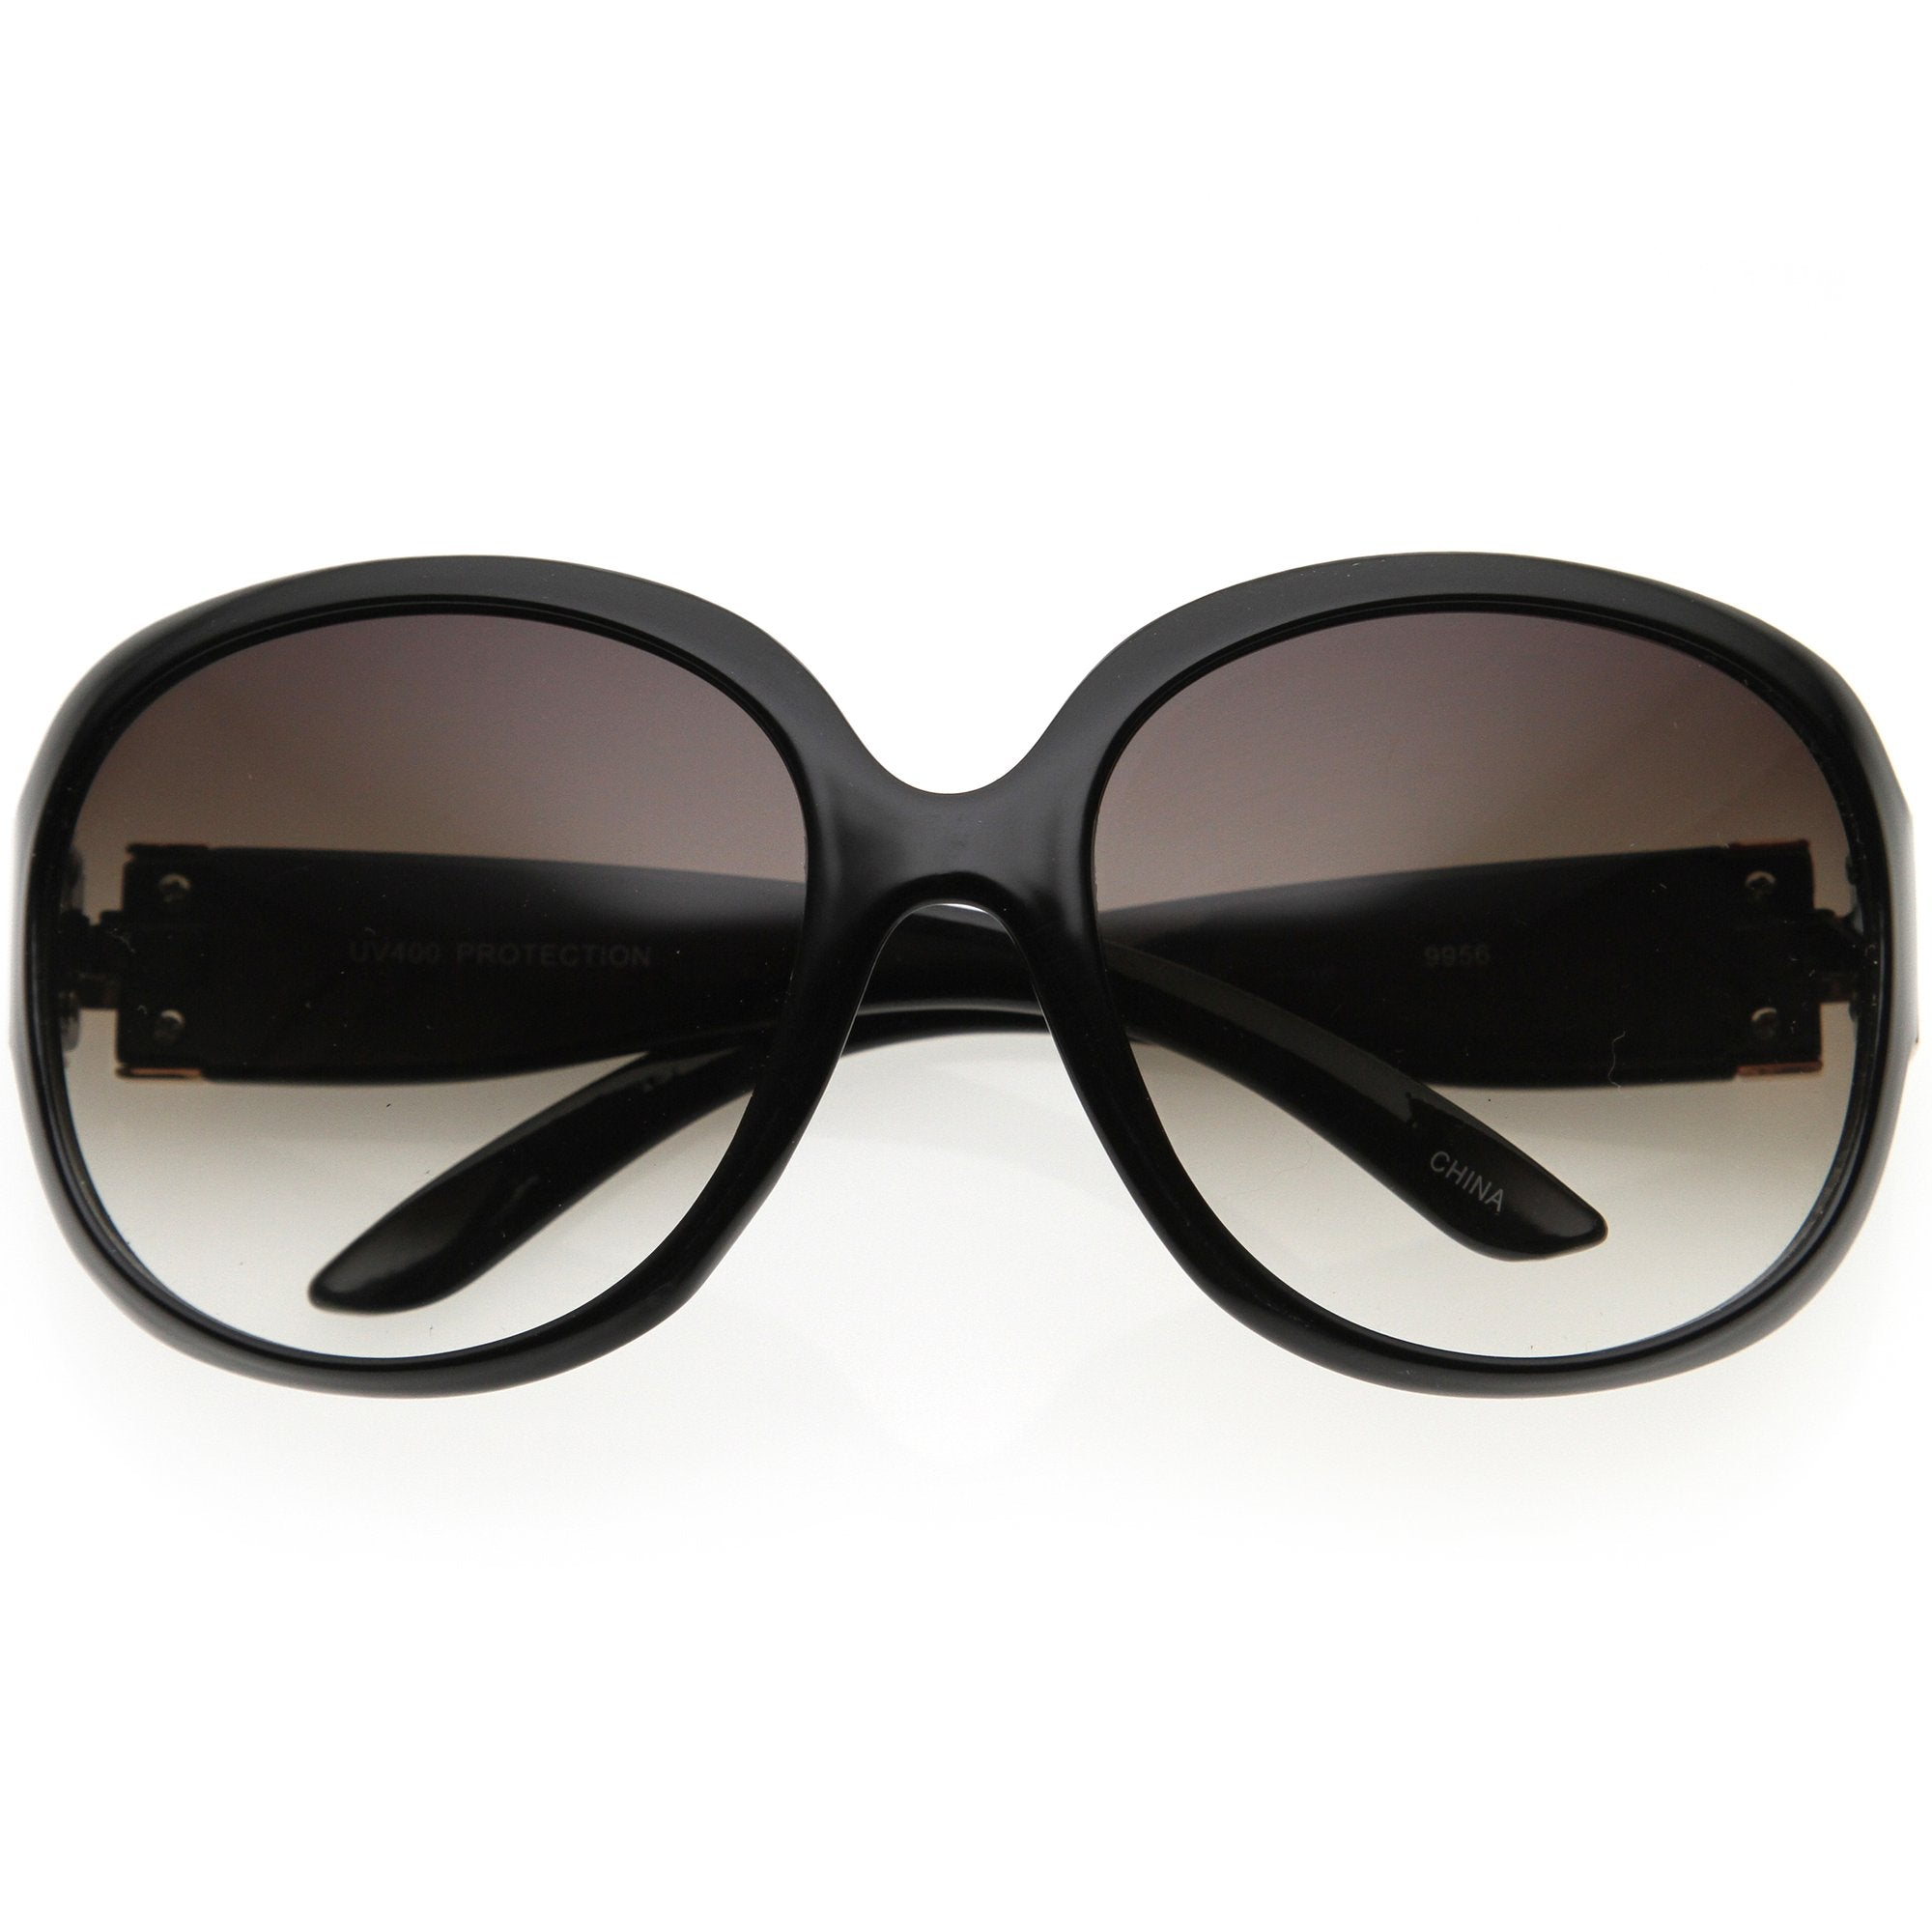 Polished Neutral Colored Lenses Rounded Oversize Sunglasses D173